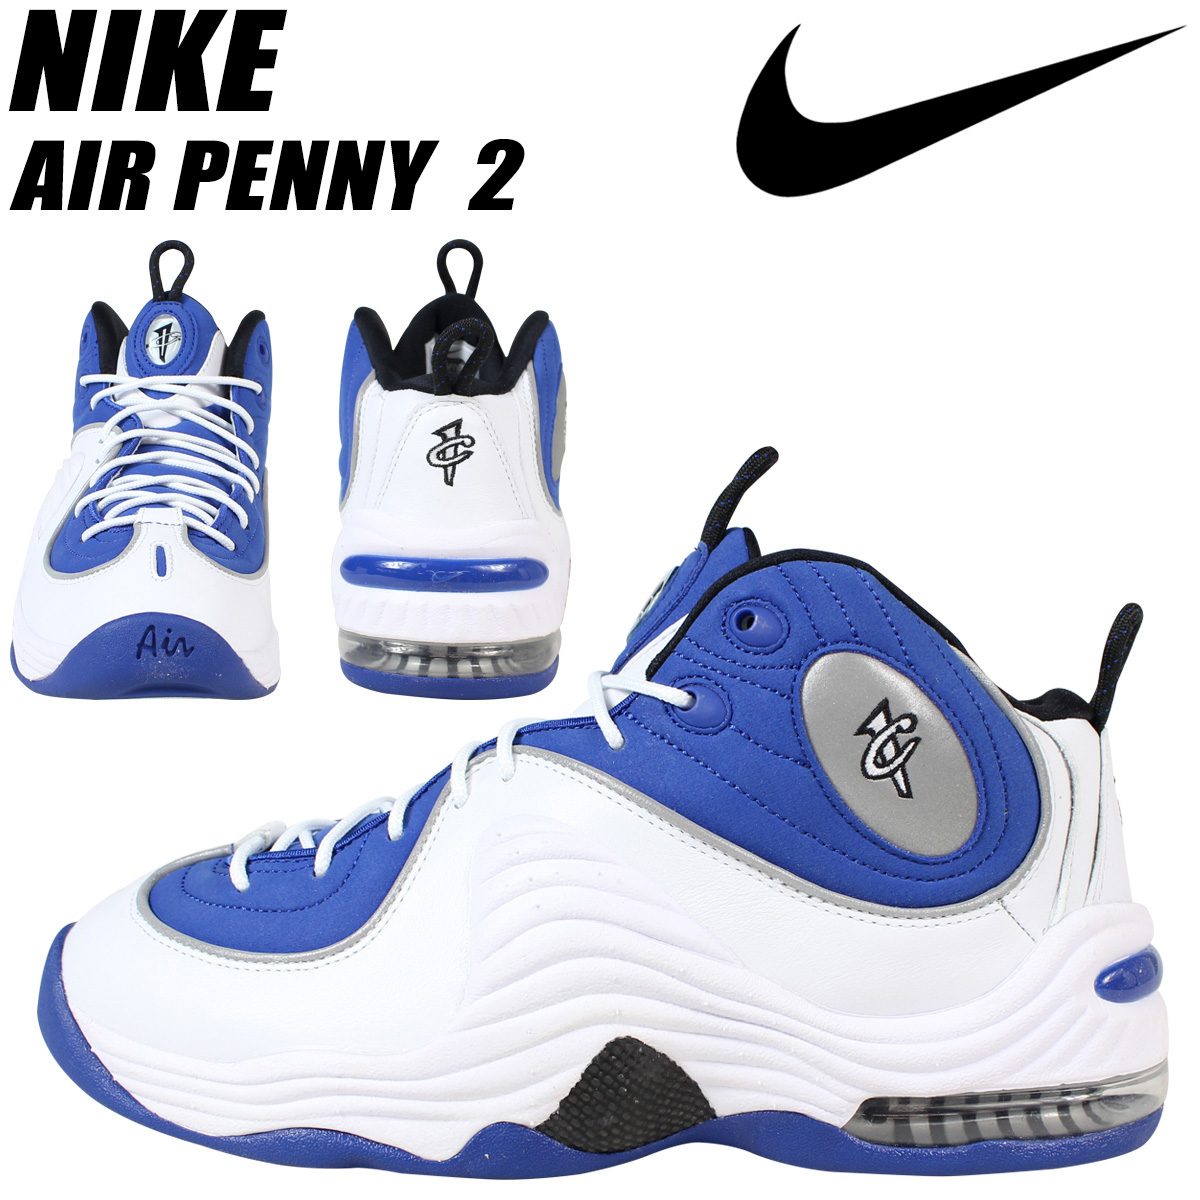 Whats Up Sports Sold Out Nike Nike Air Penny Sneakers Air Penny 2